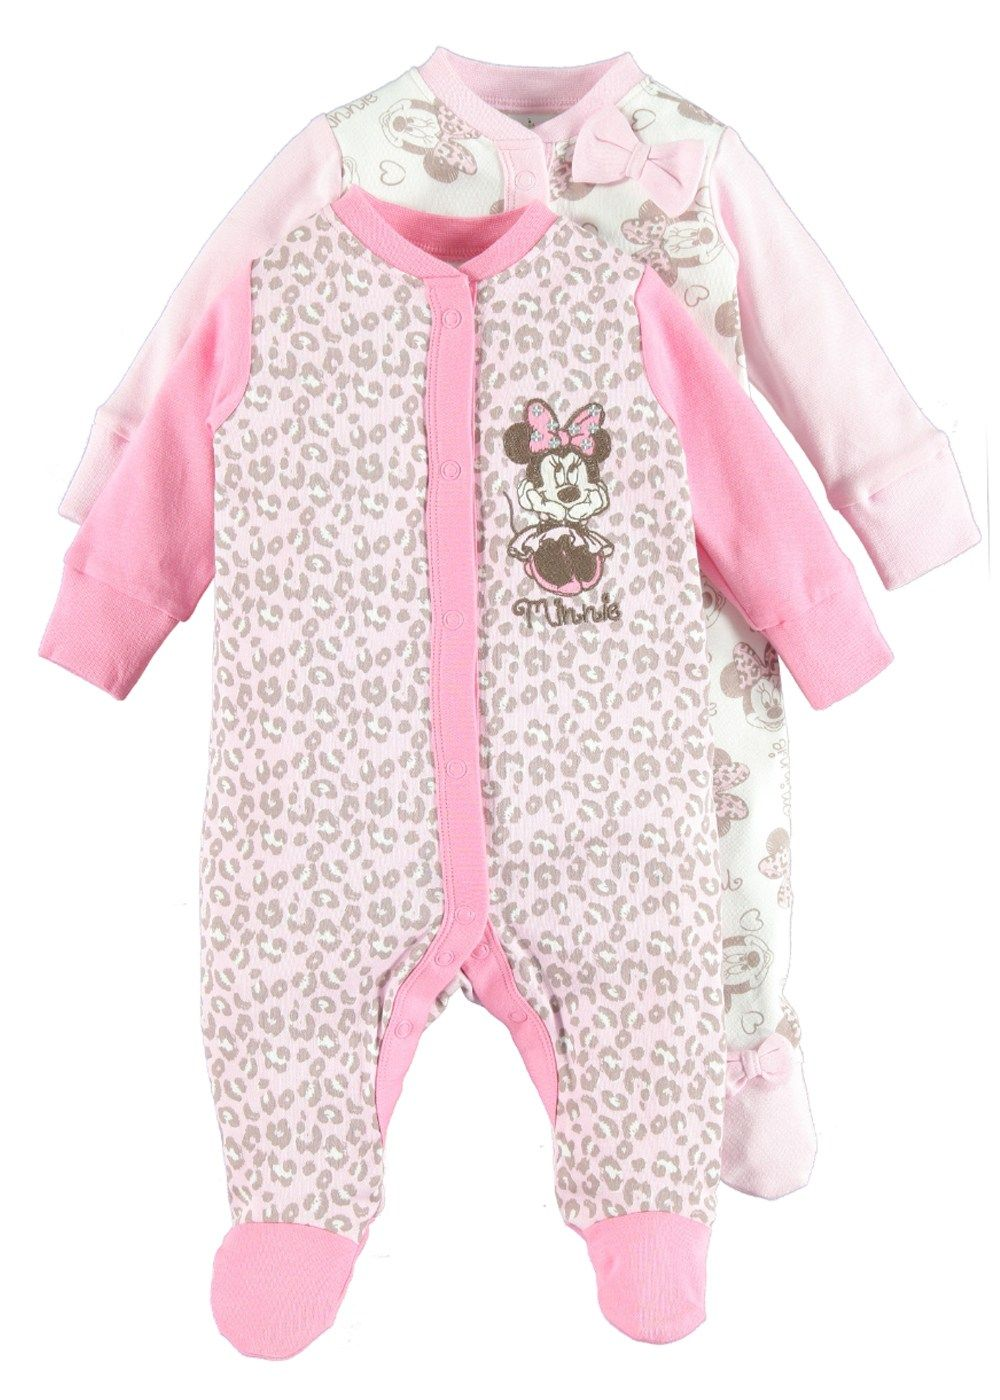 Disney Minnie Mouse Baby Girls 2 Pack Footie Pajamas